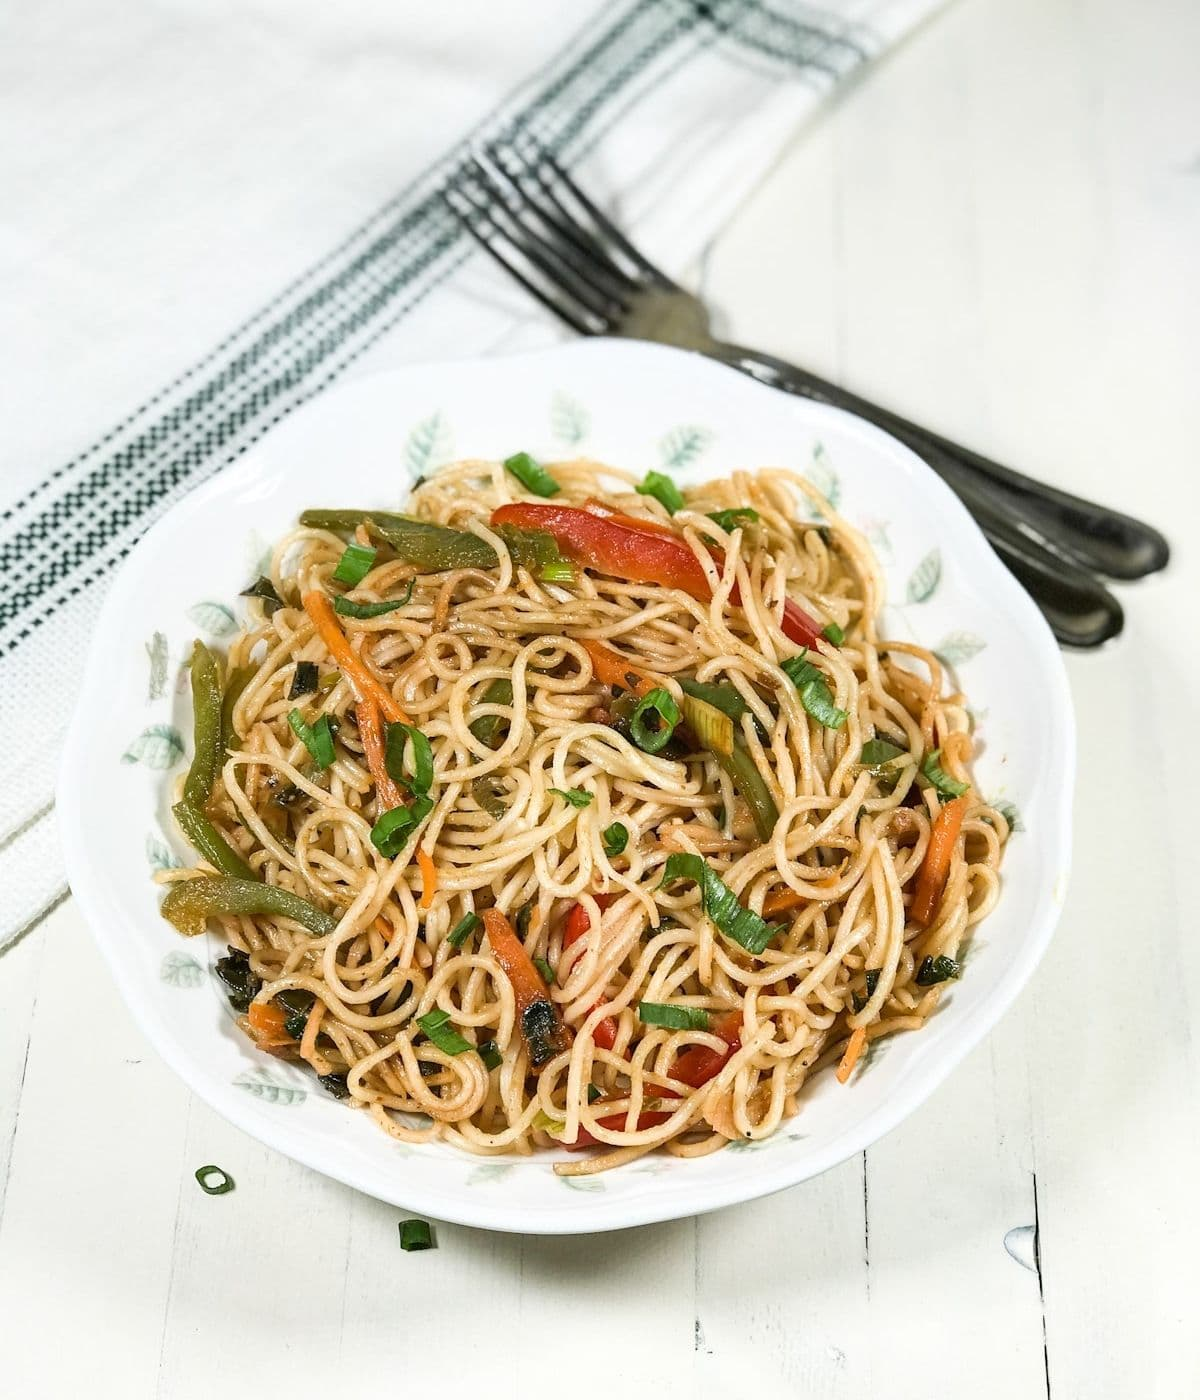 A plate with hakka noodles and topped with spring onions on the table